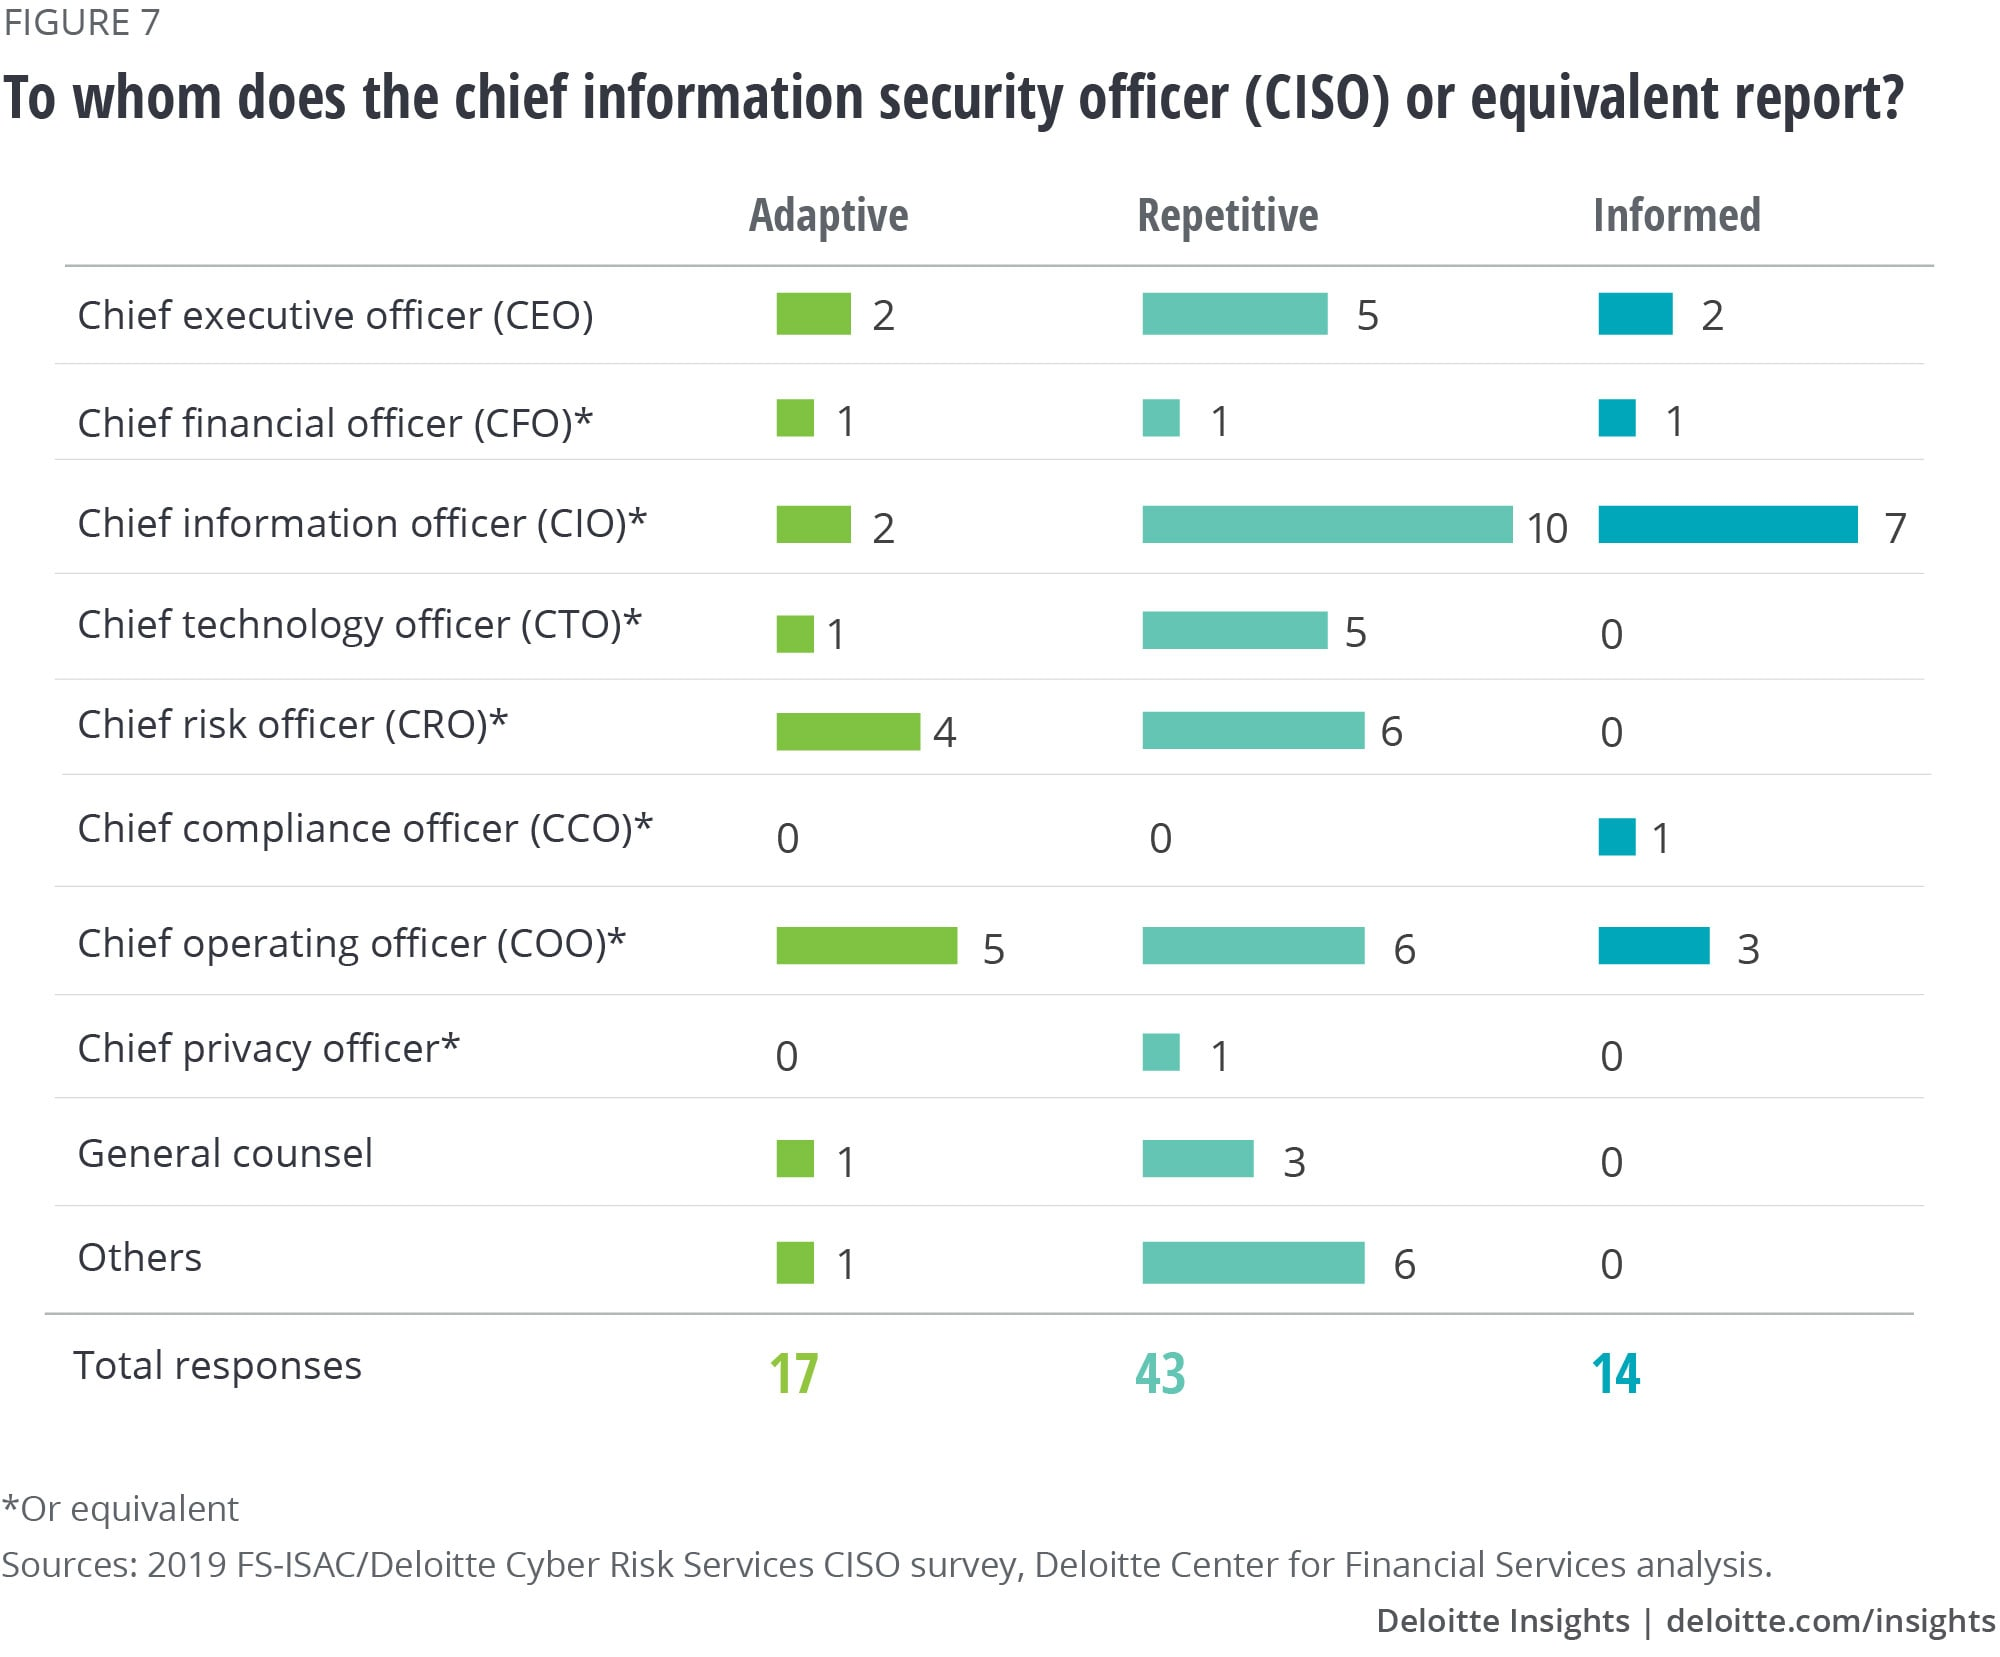 To whom does the chief information security officer (CISO) or equivalent report?